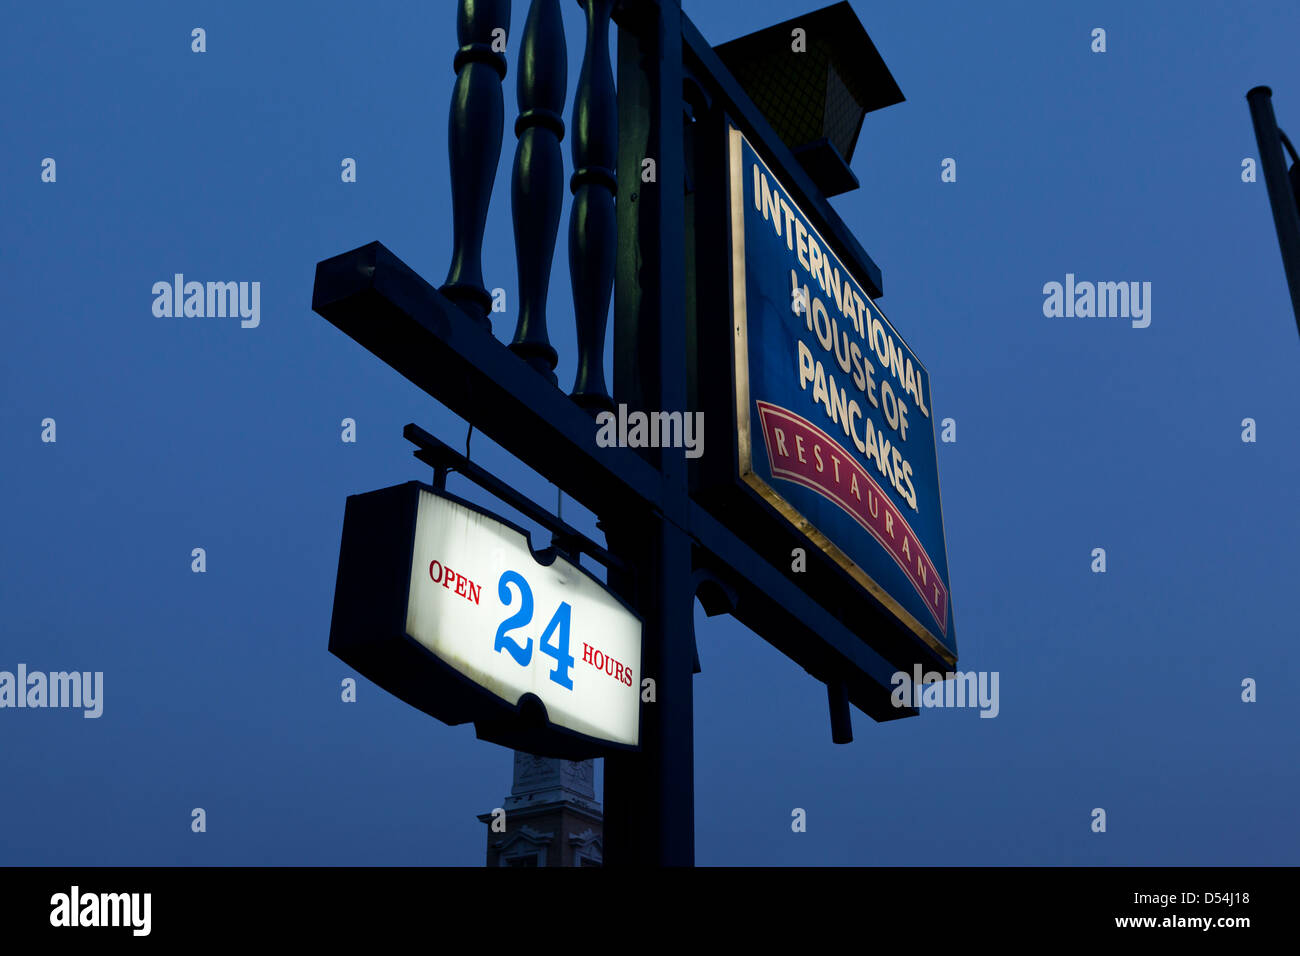 IHOP Open 24 hours sign - Stock Image